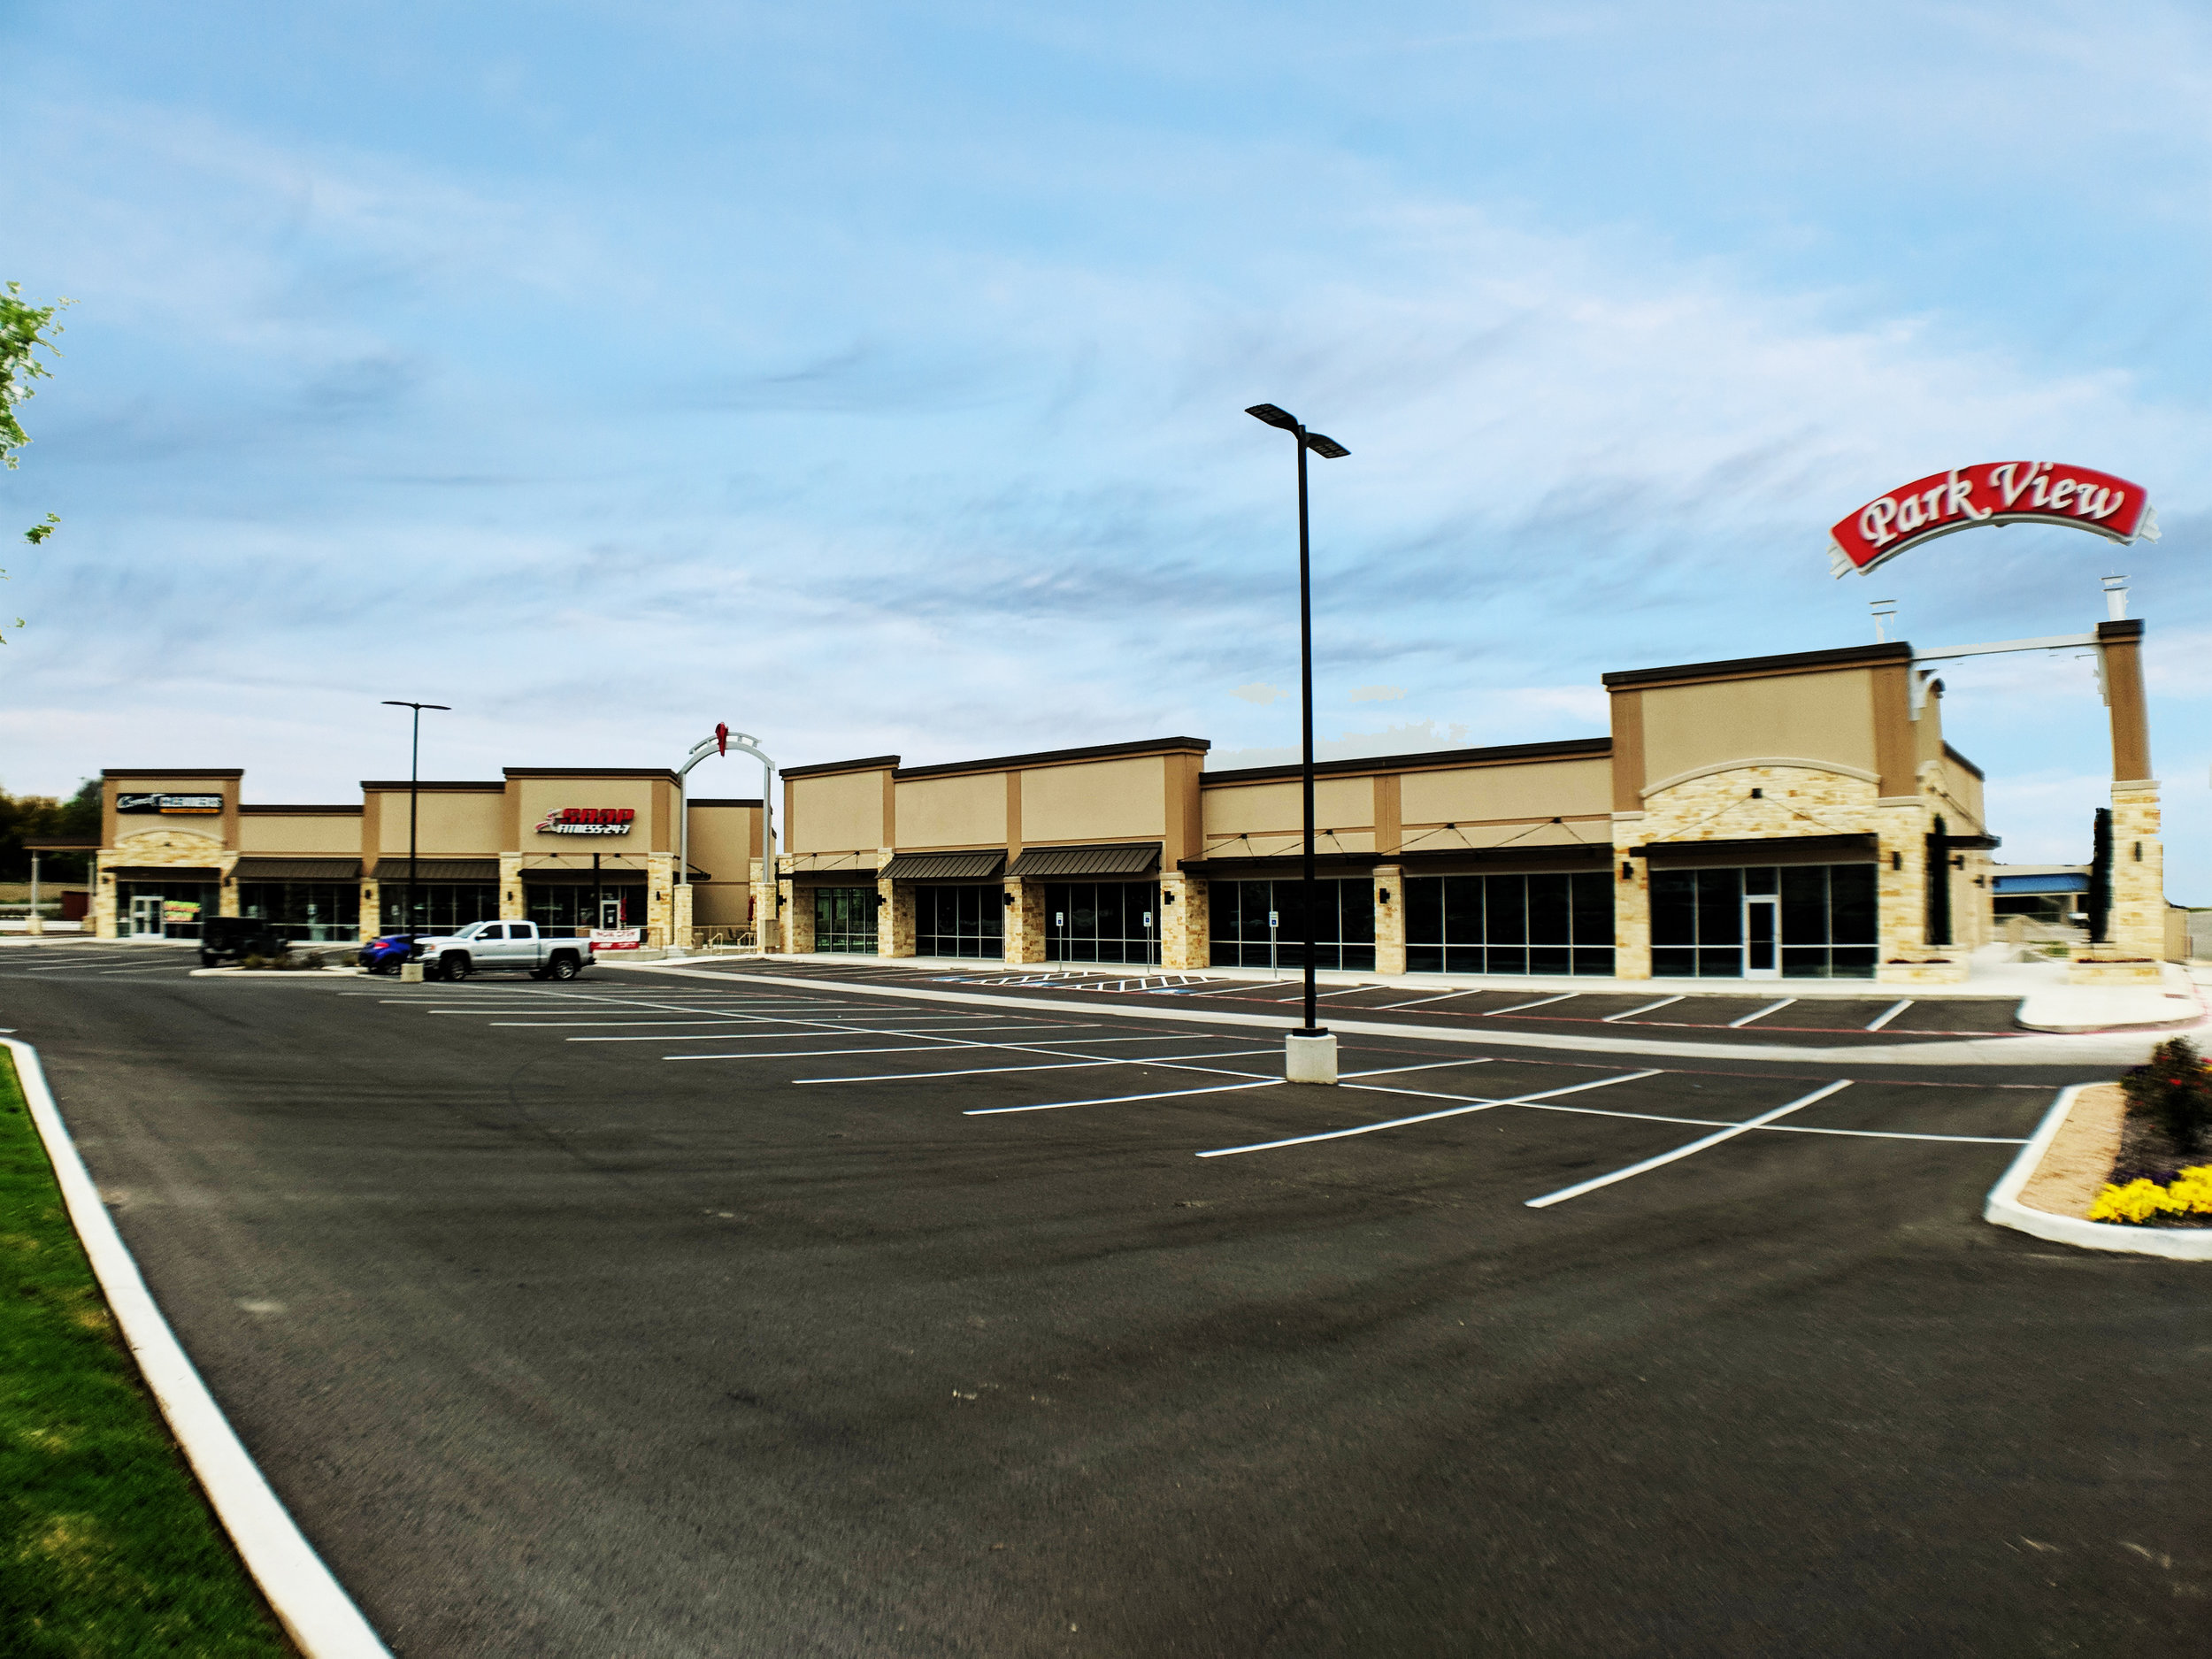 PARK VIEW PLAZA IN NEW BRAUNFELS